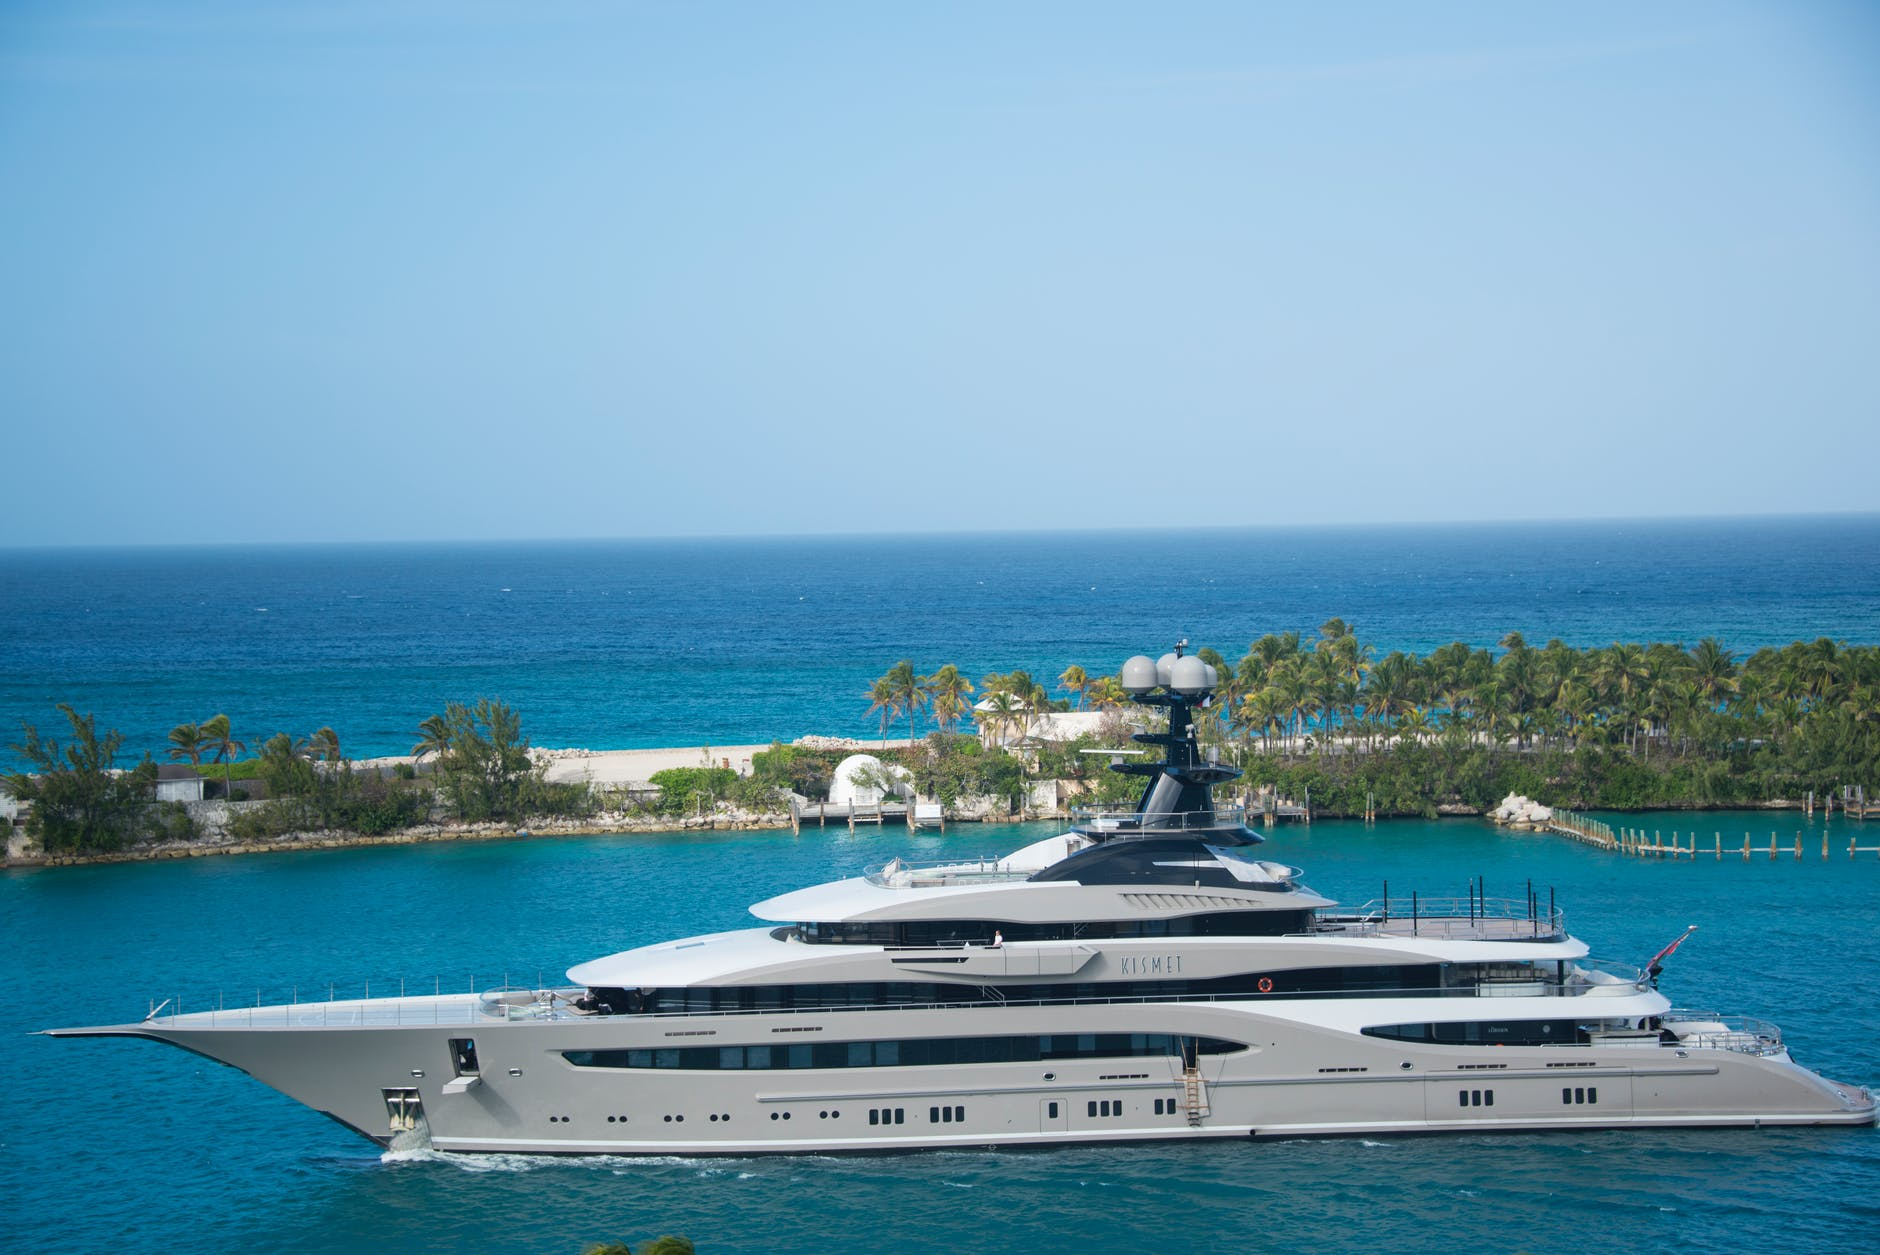 white and blue yacht on body of water